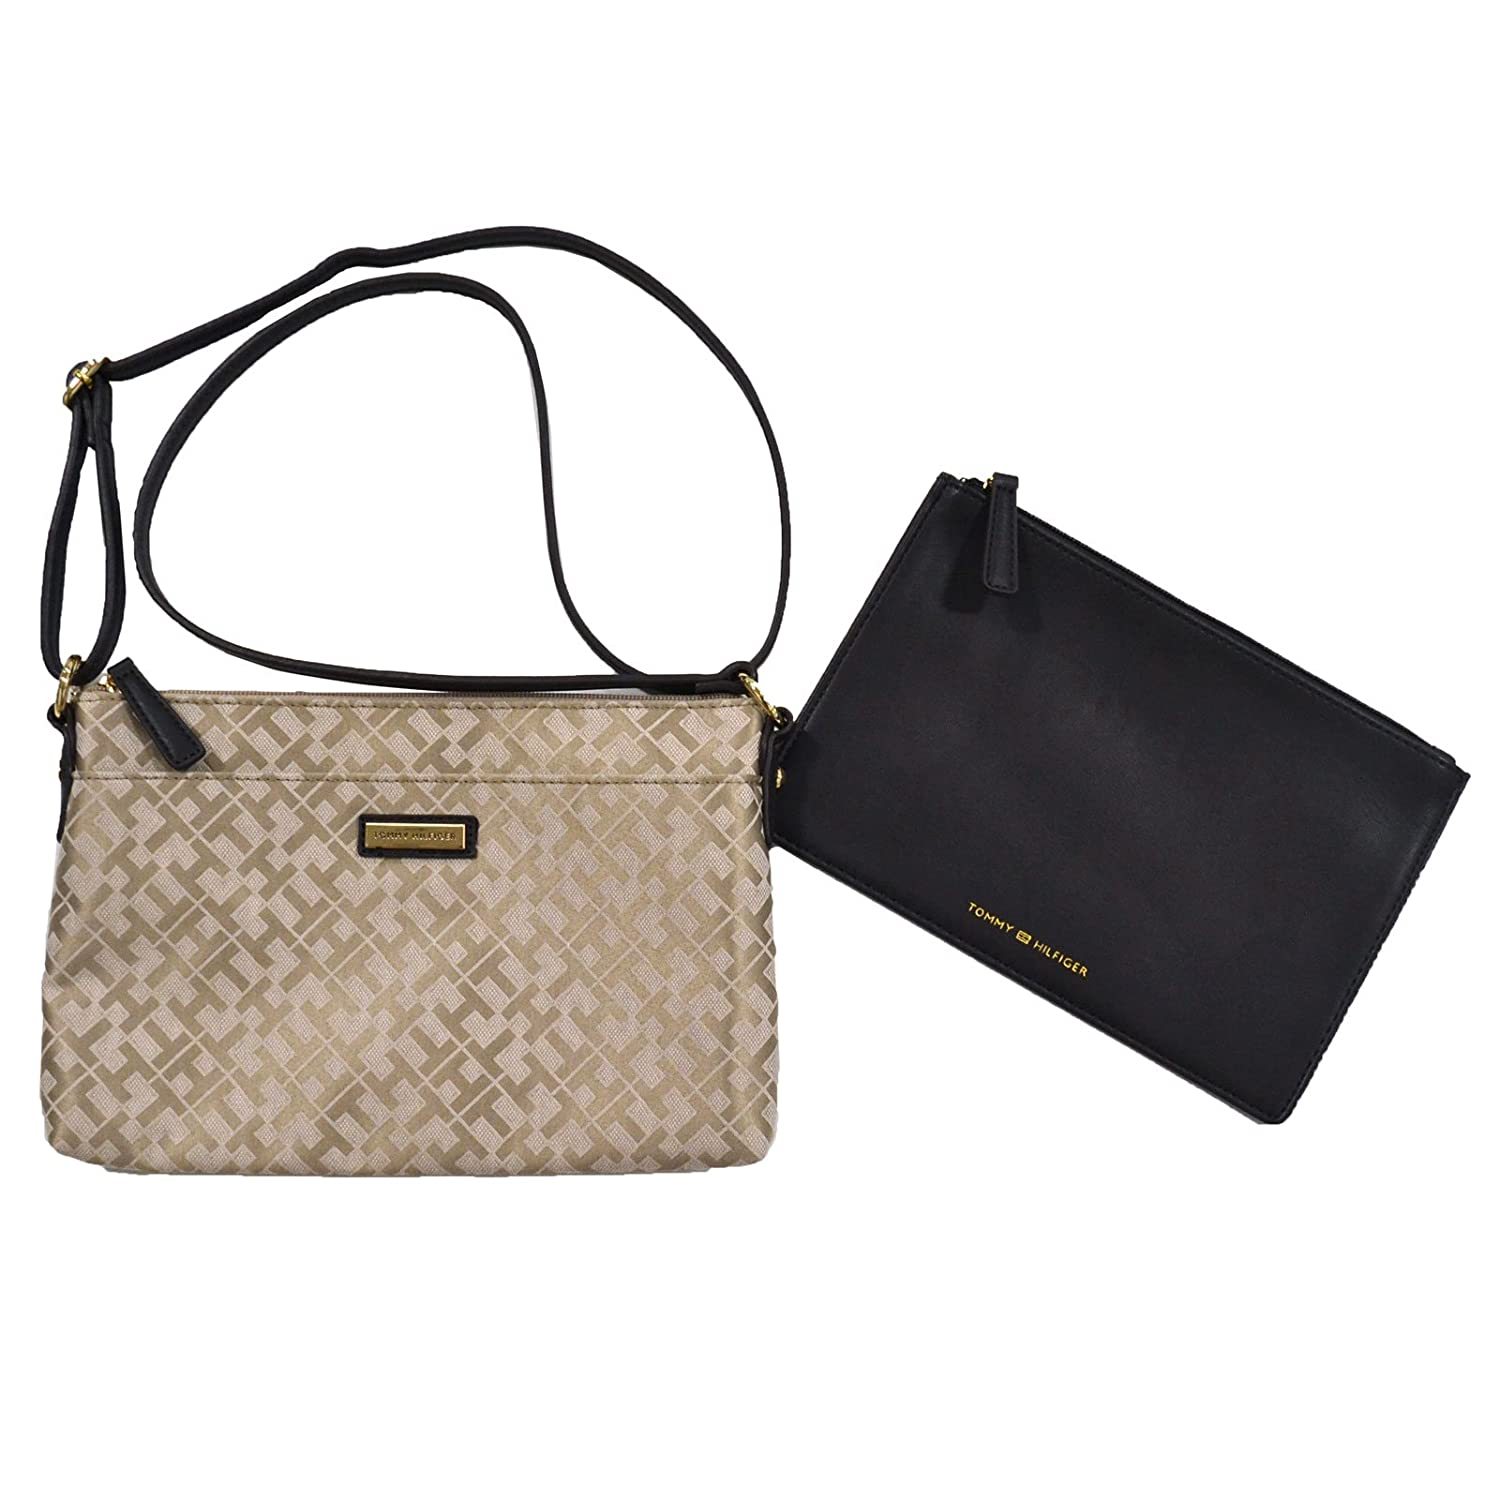 Tommy Hilfiger Crossbody With Pouch In Beige Brown